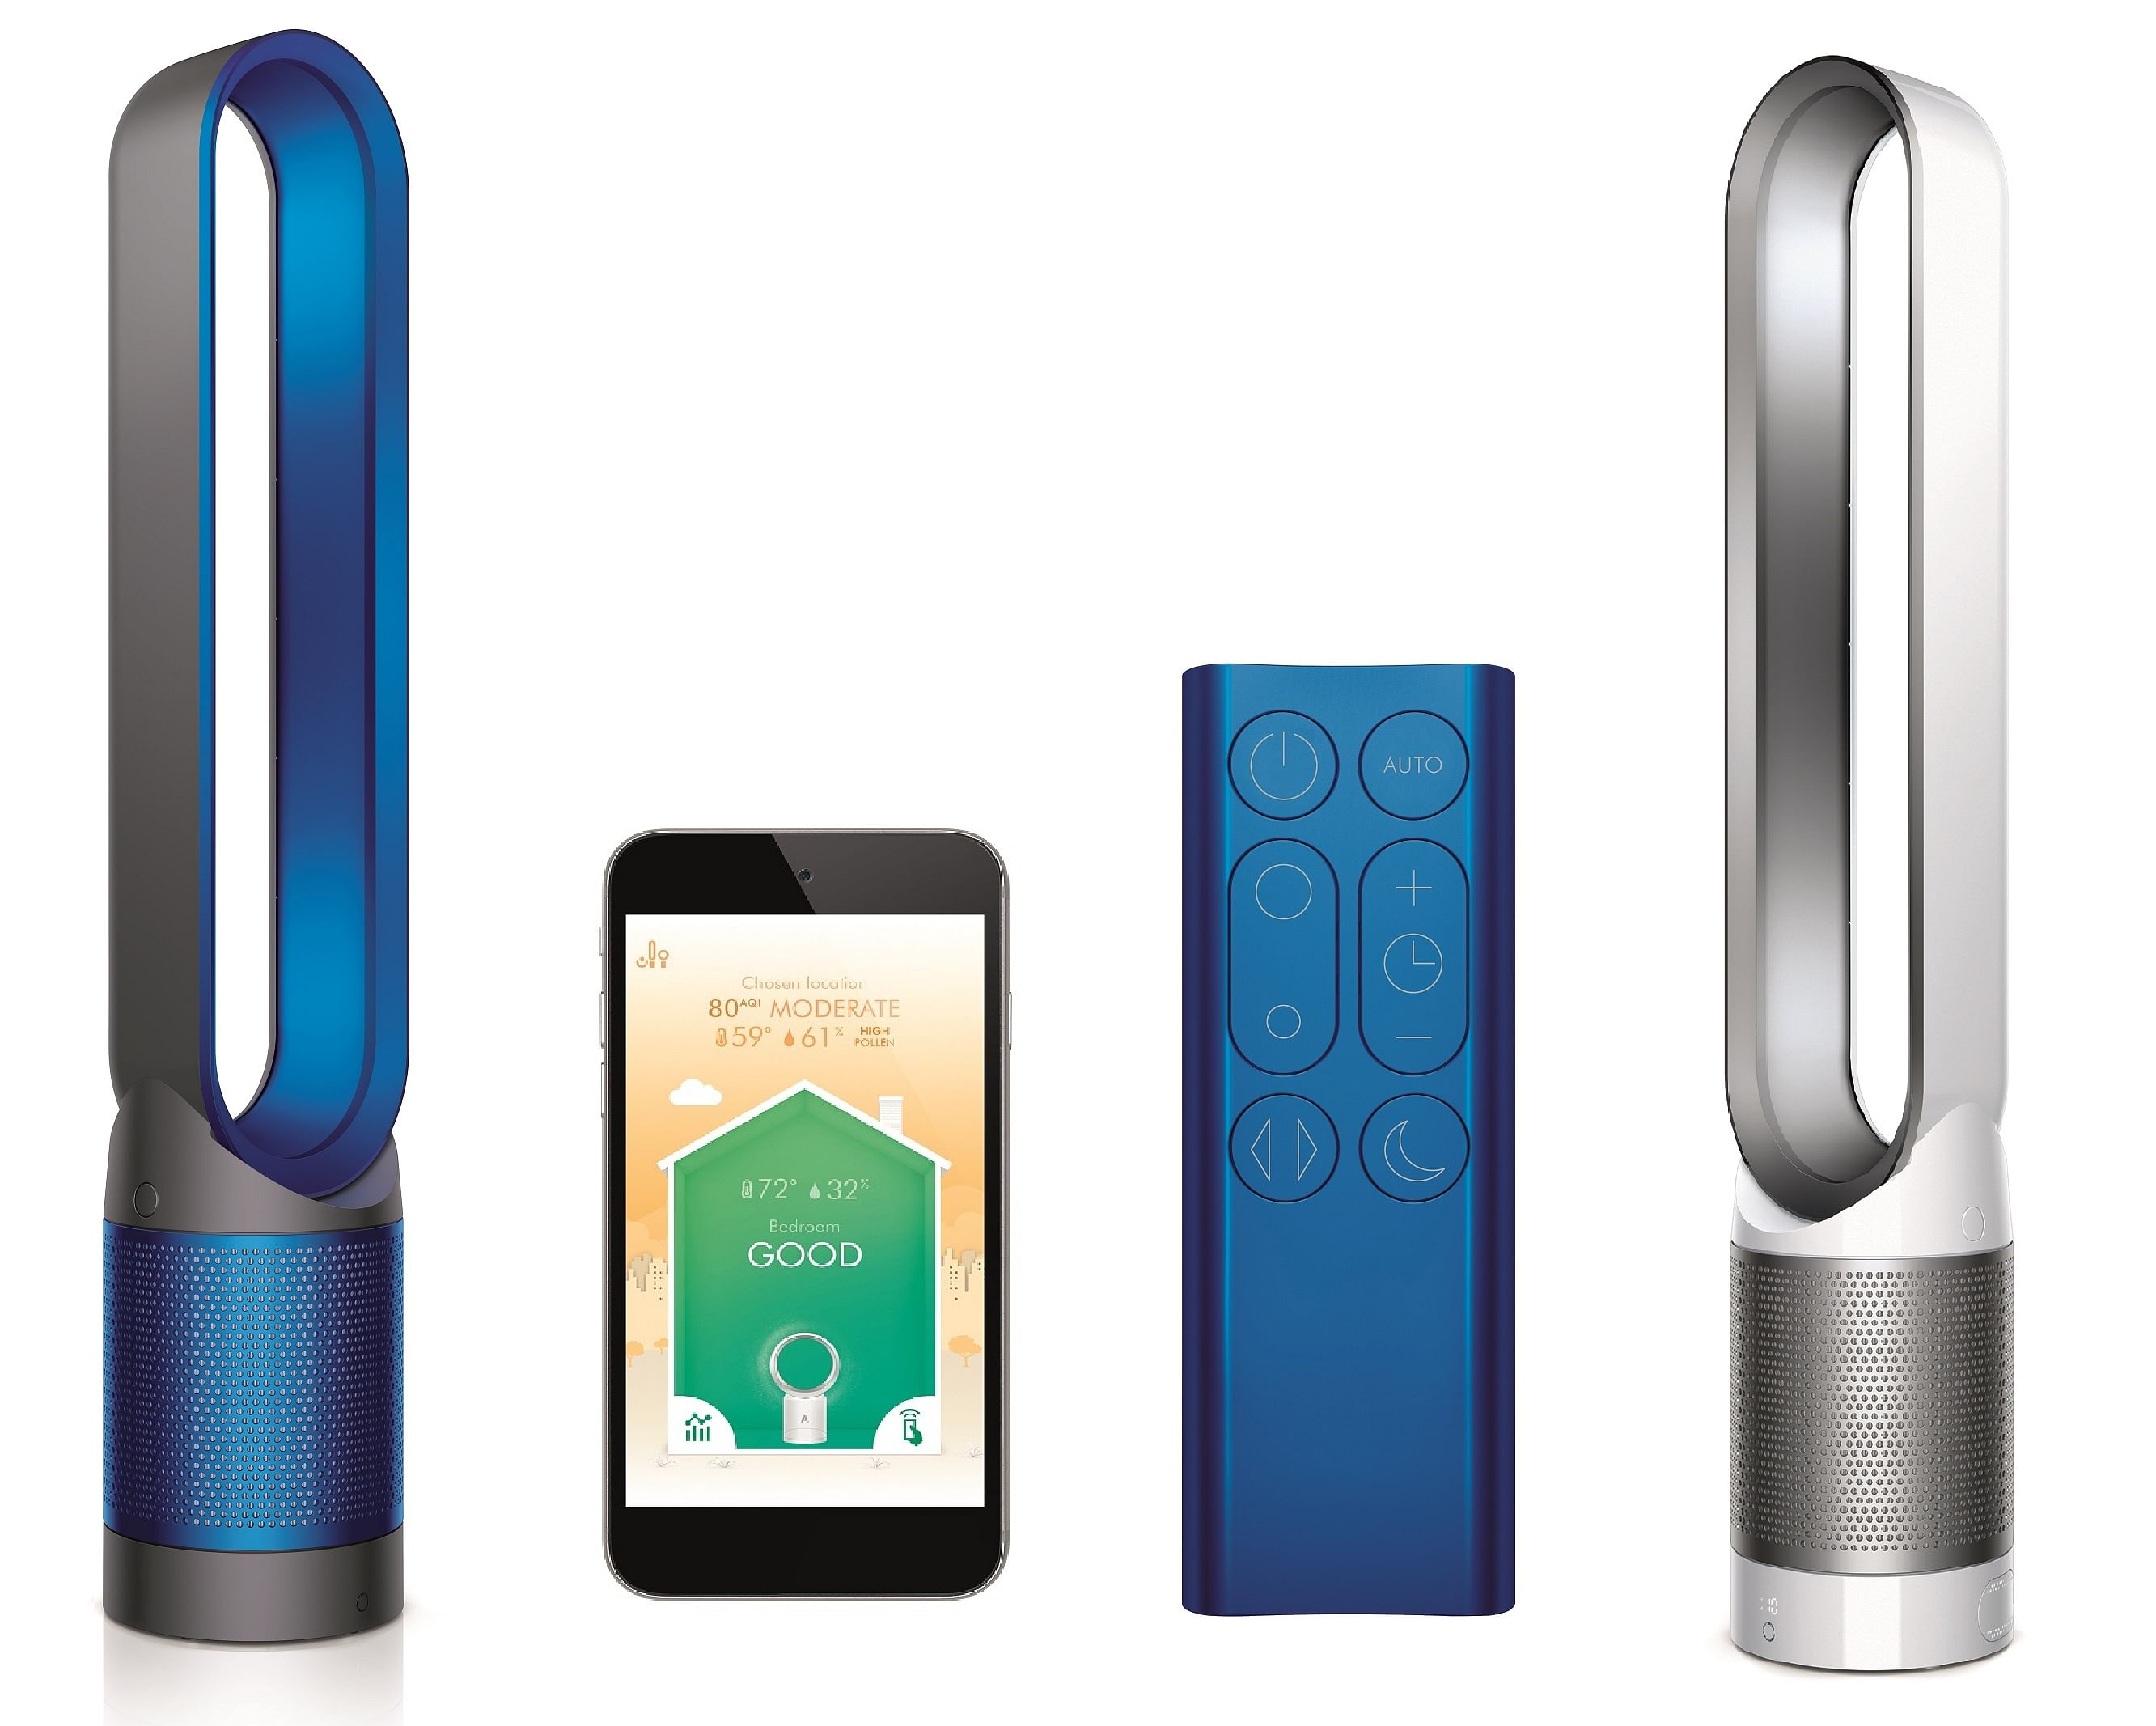 smart air purifiers dyson pure cool link vs philips 3000 air cleaner home decor singapore. Black Bedroom Furniture Sets. Home Design Ideas